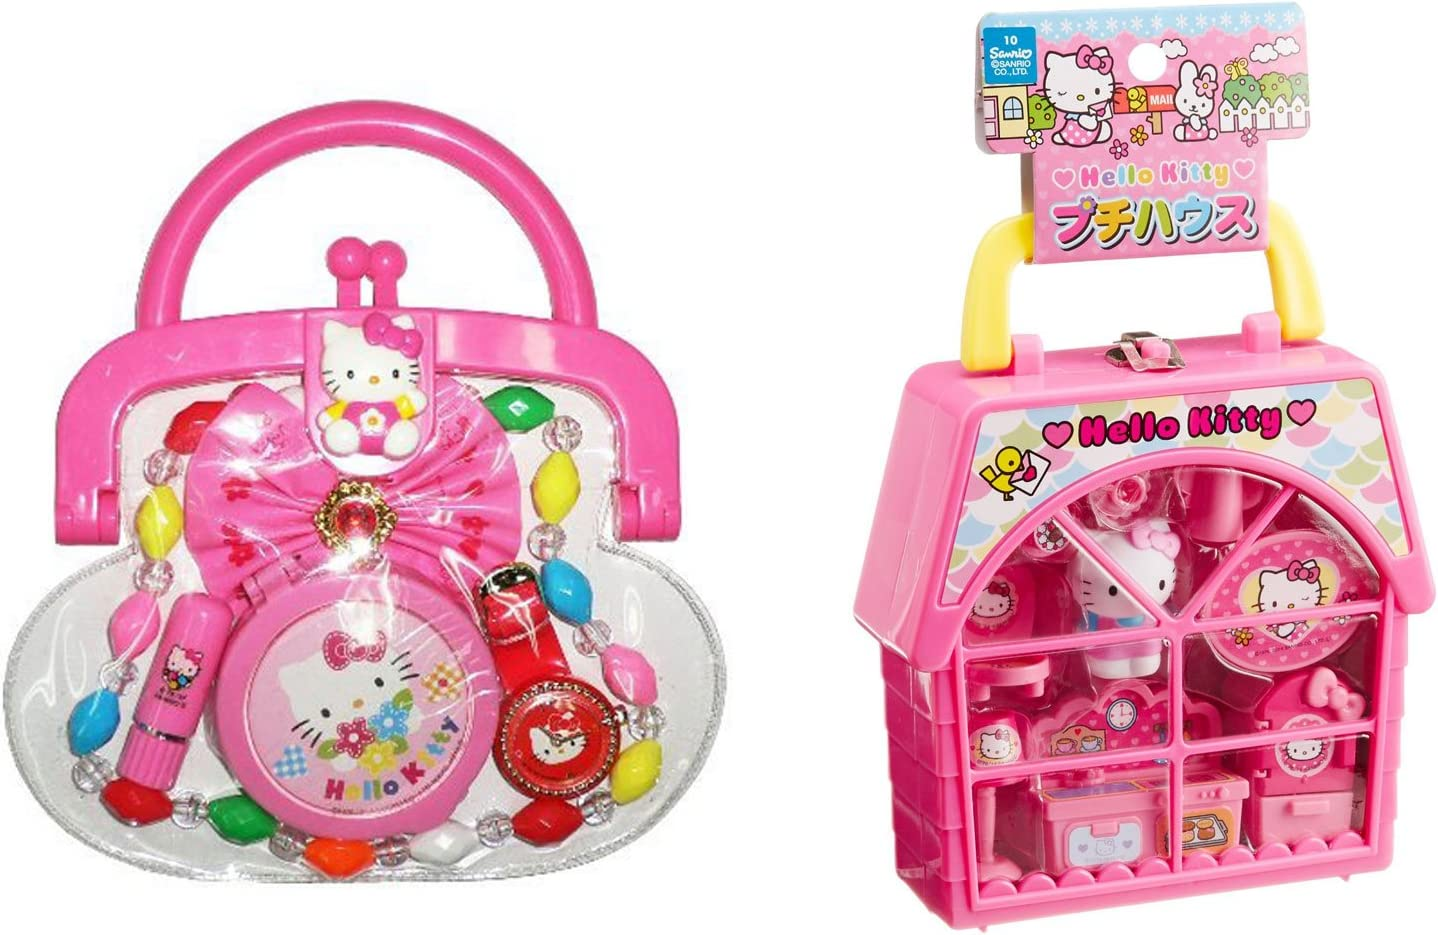 Hello Kitty Popular popular service 2 Portable Toys Bundle - House with Petty Purse and